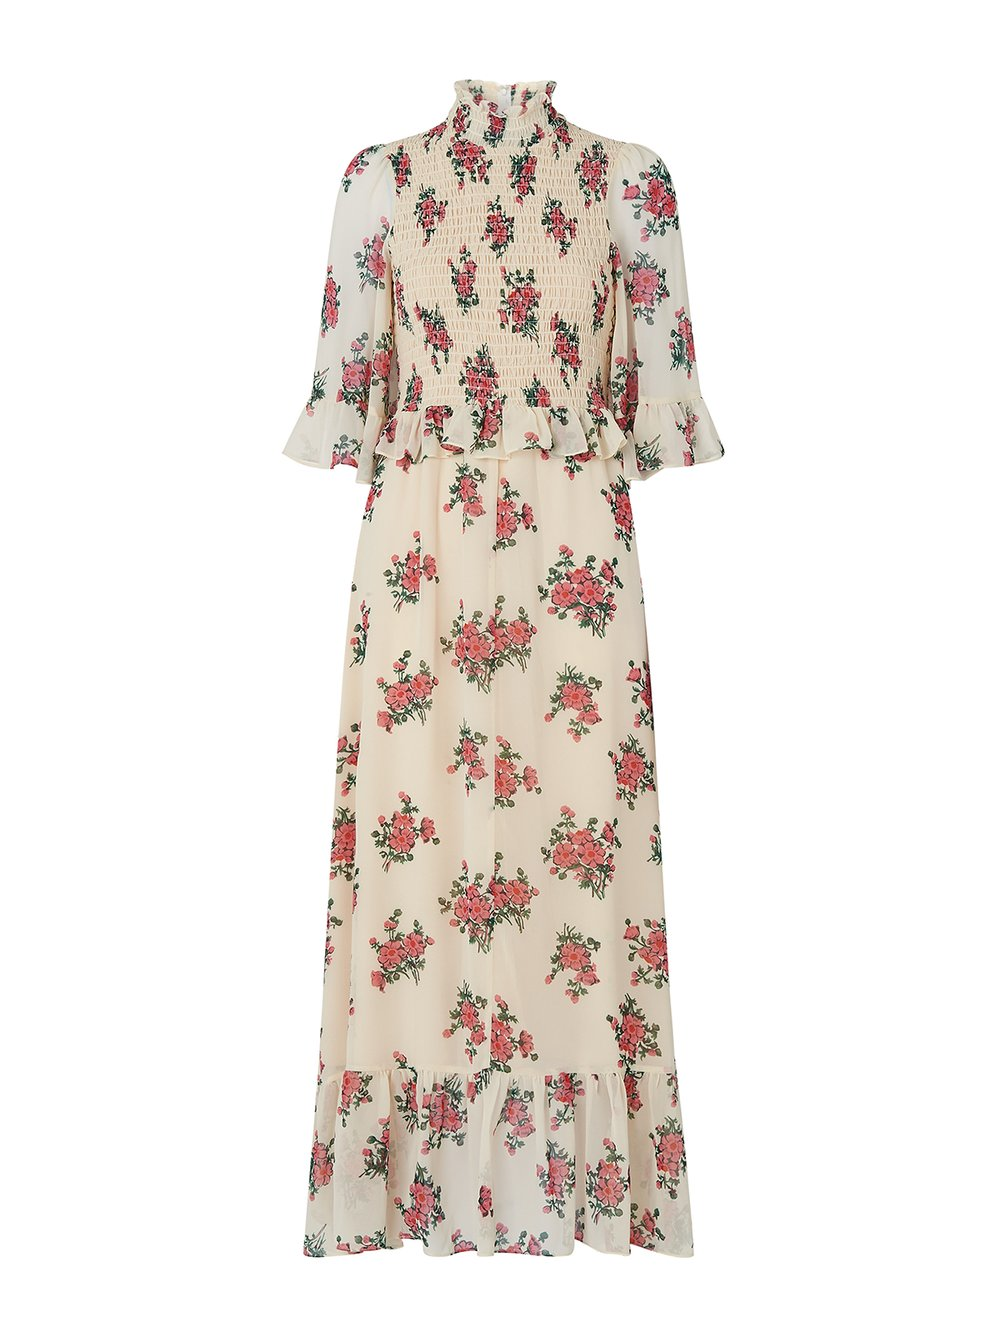 Vintage floral print dress from Kitri.